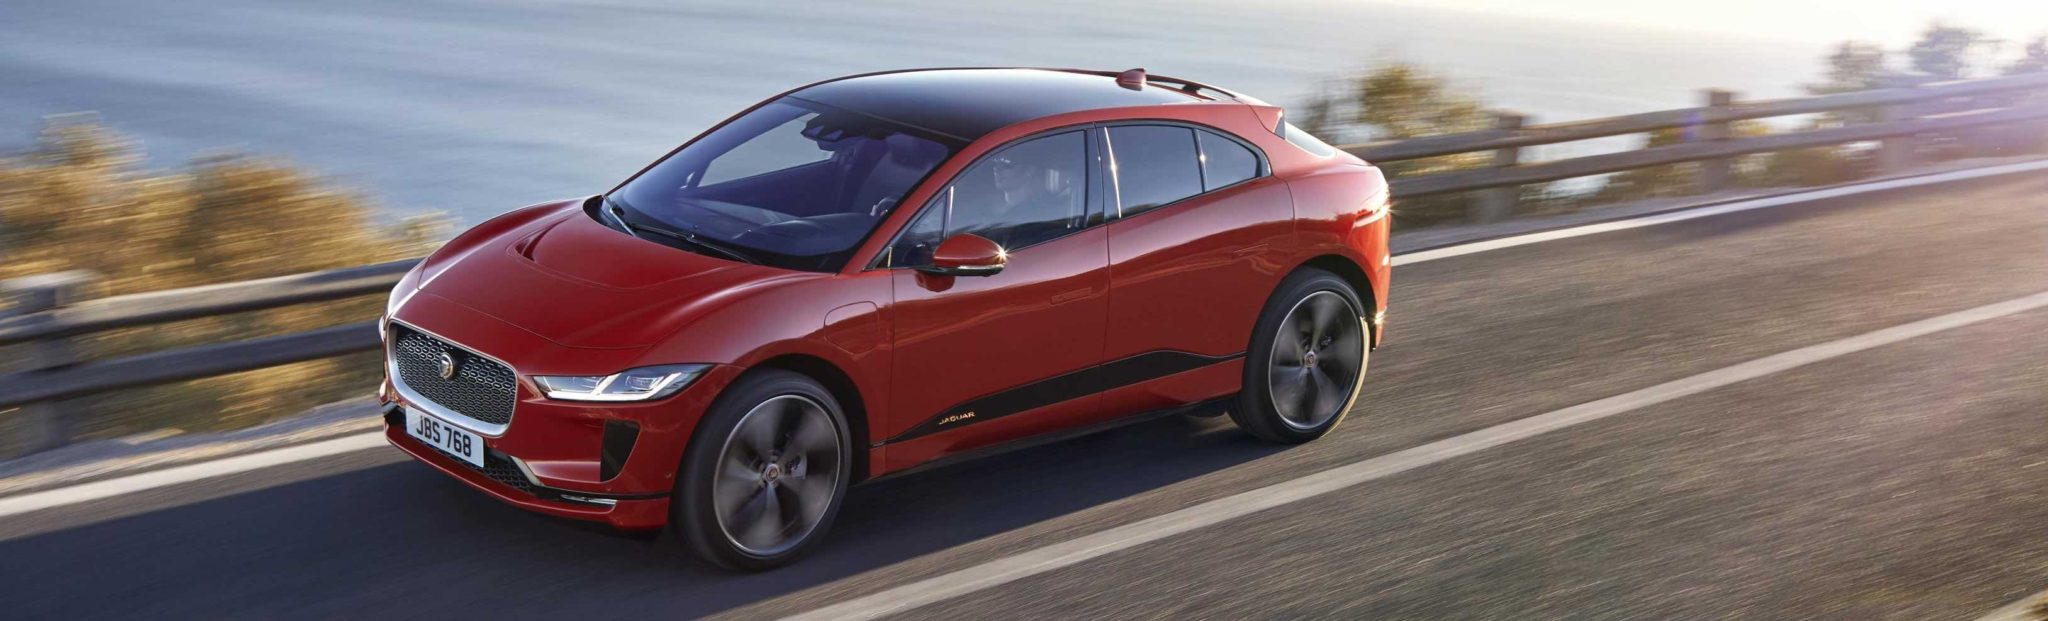 ALL-ELECTRIC JAGUAR I-PACE IS A 'GAME CHANGER'